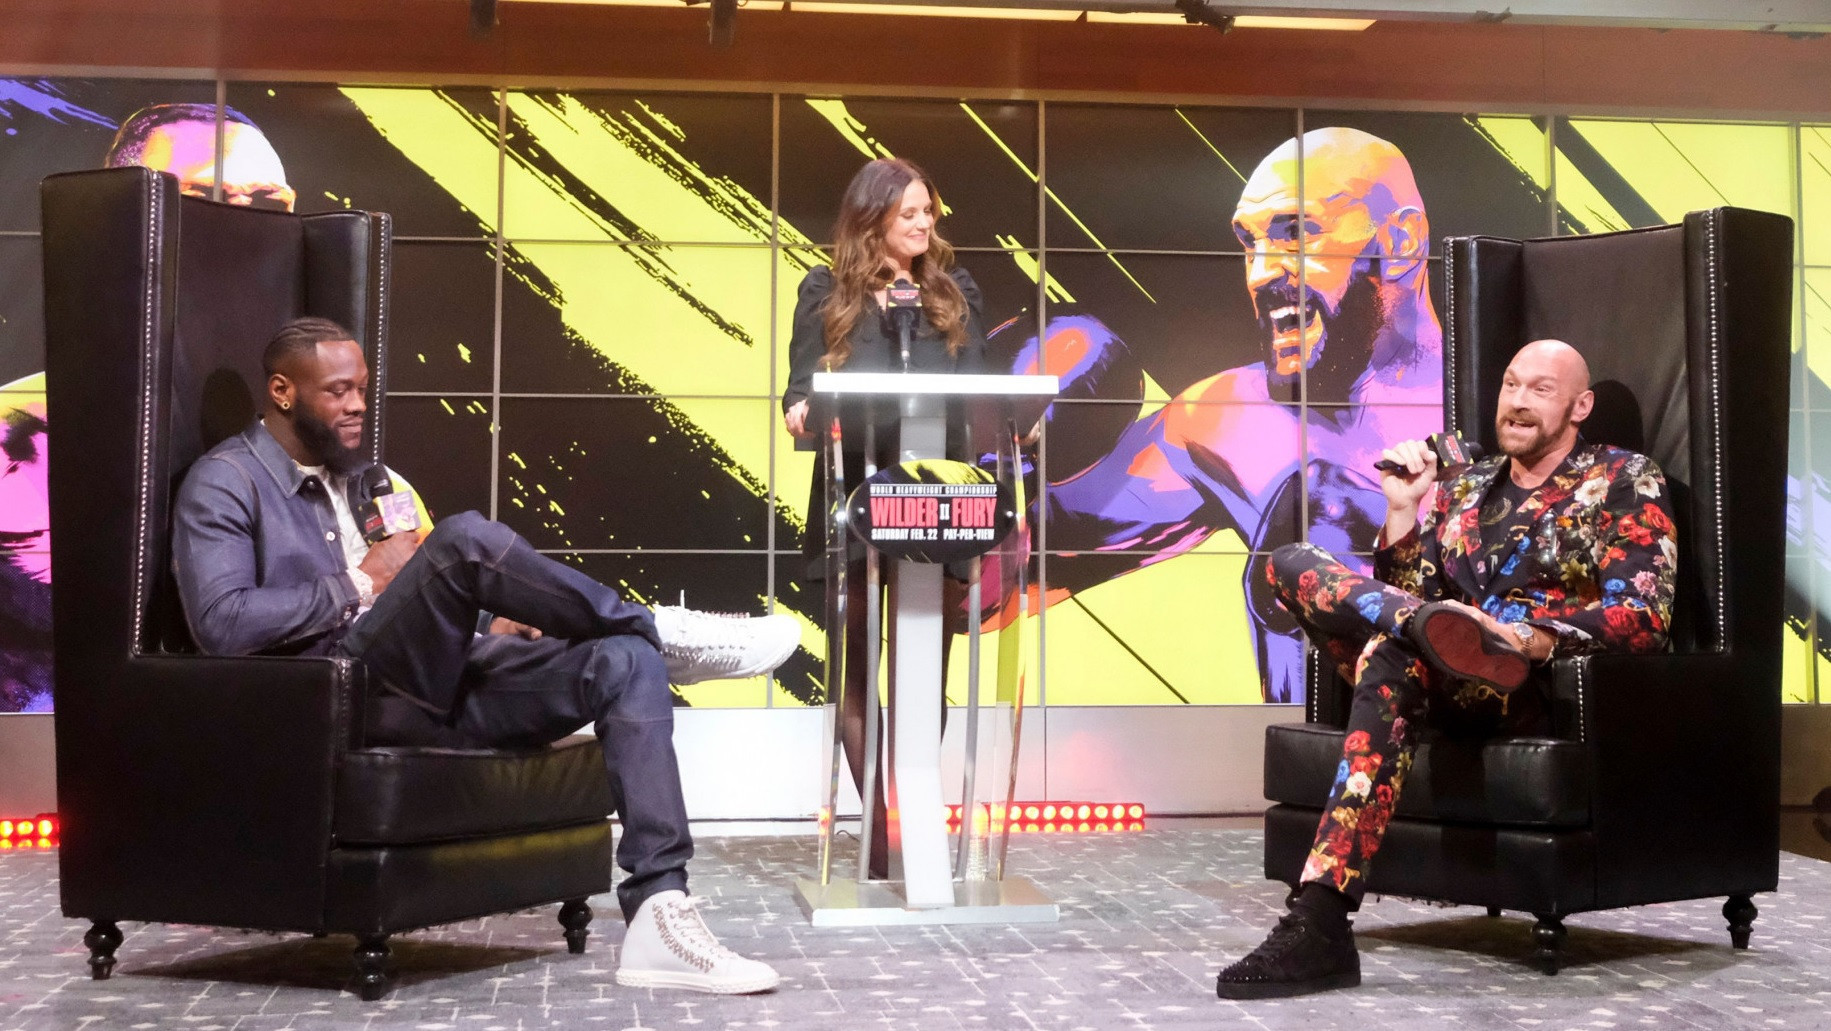 Deontay Wilder and Tyson Fury go head-to-head at a TV event ahead of their heavyweight fight earlier this year - ©AFP